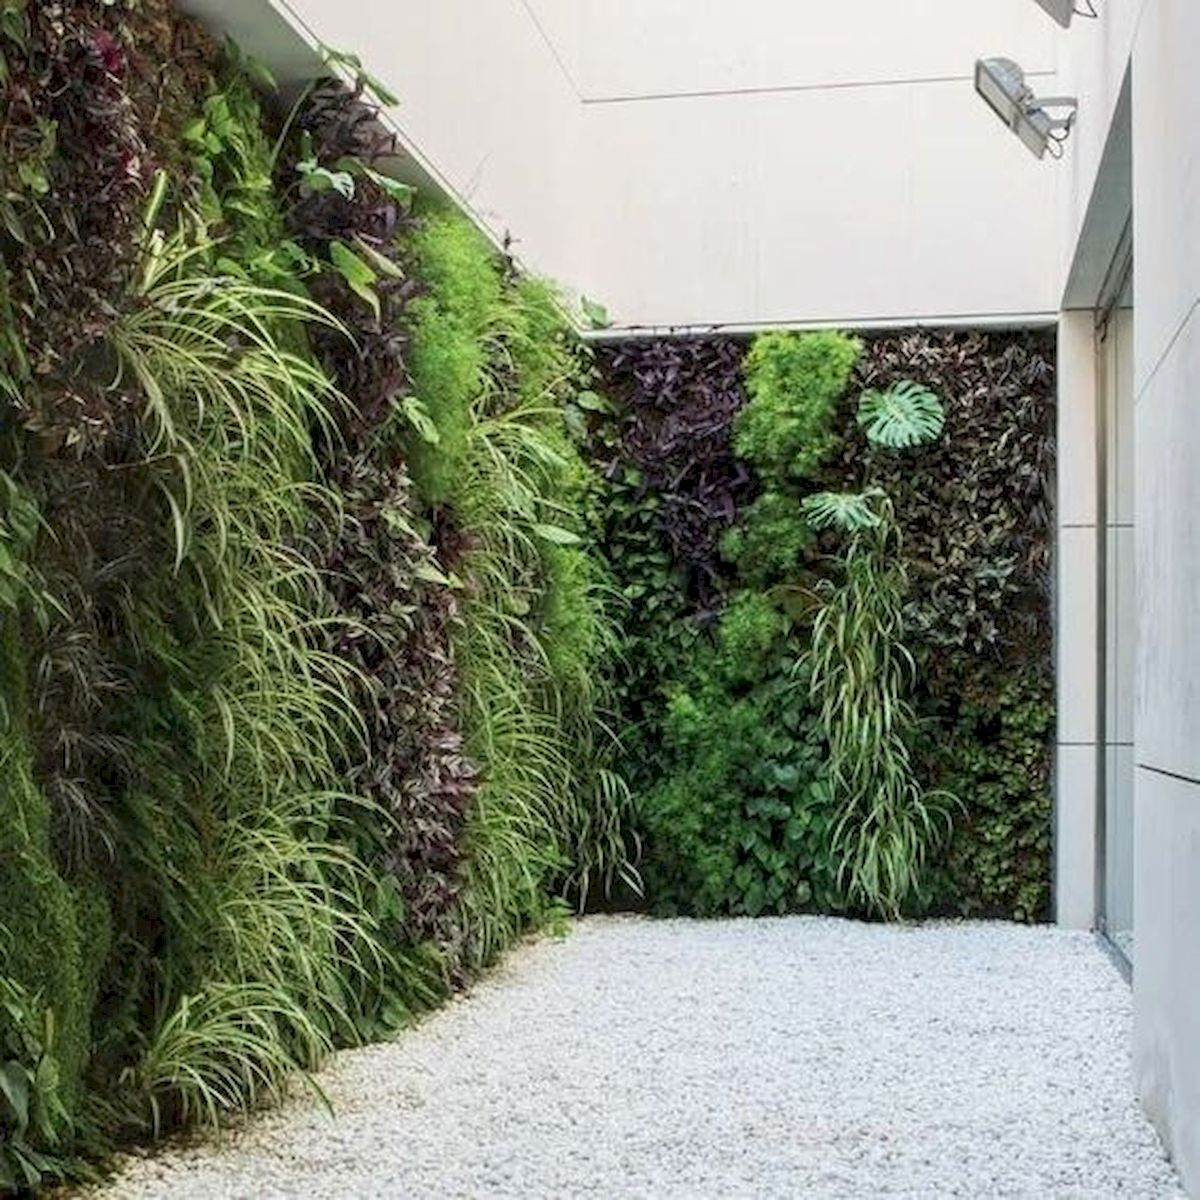 44 Fantastic Vertical Garden Ideas To Make Your Home Beautiful (31)